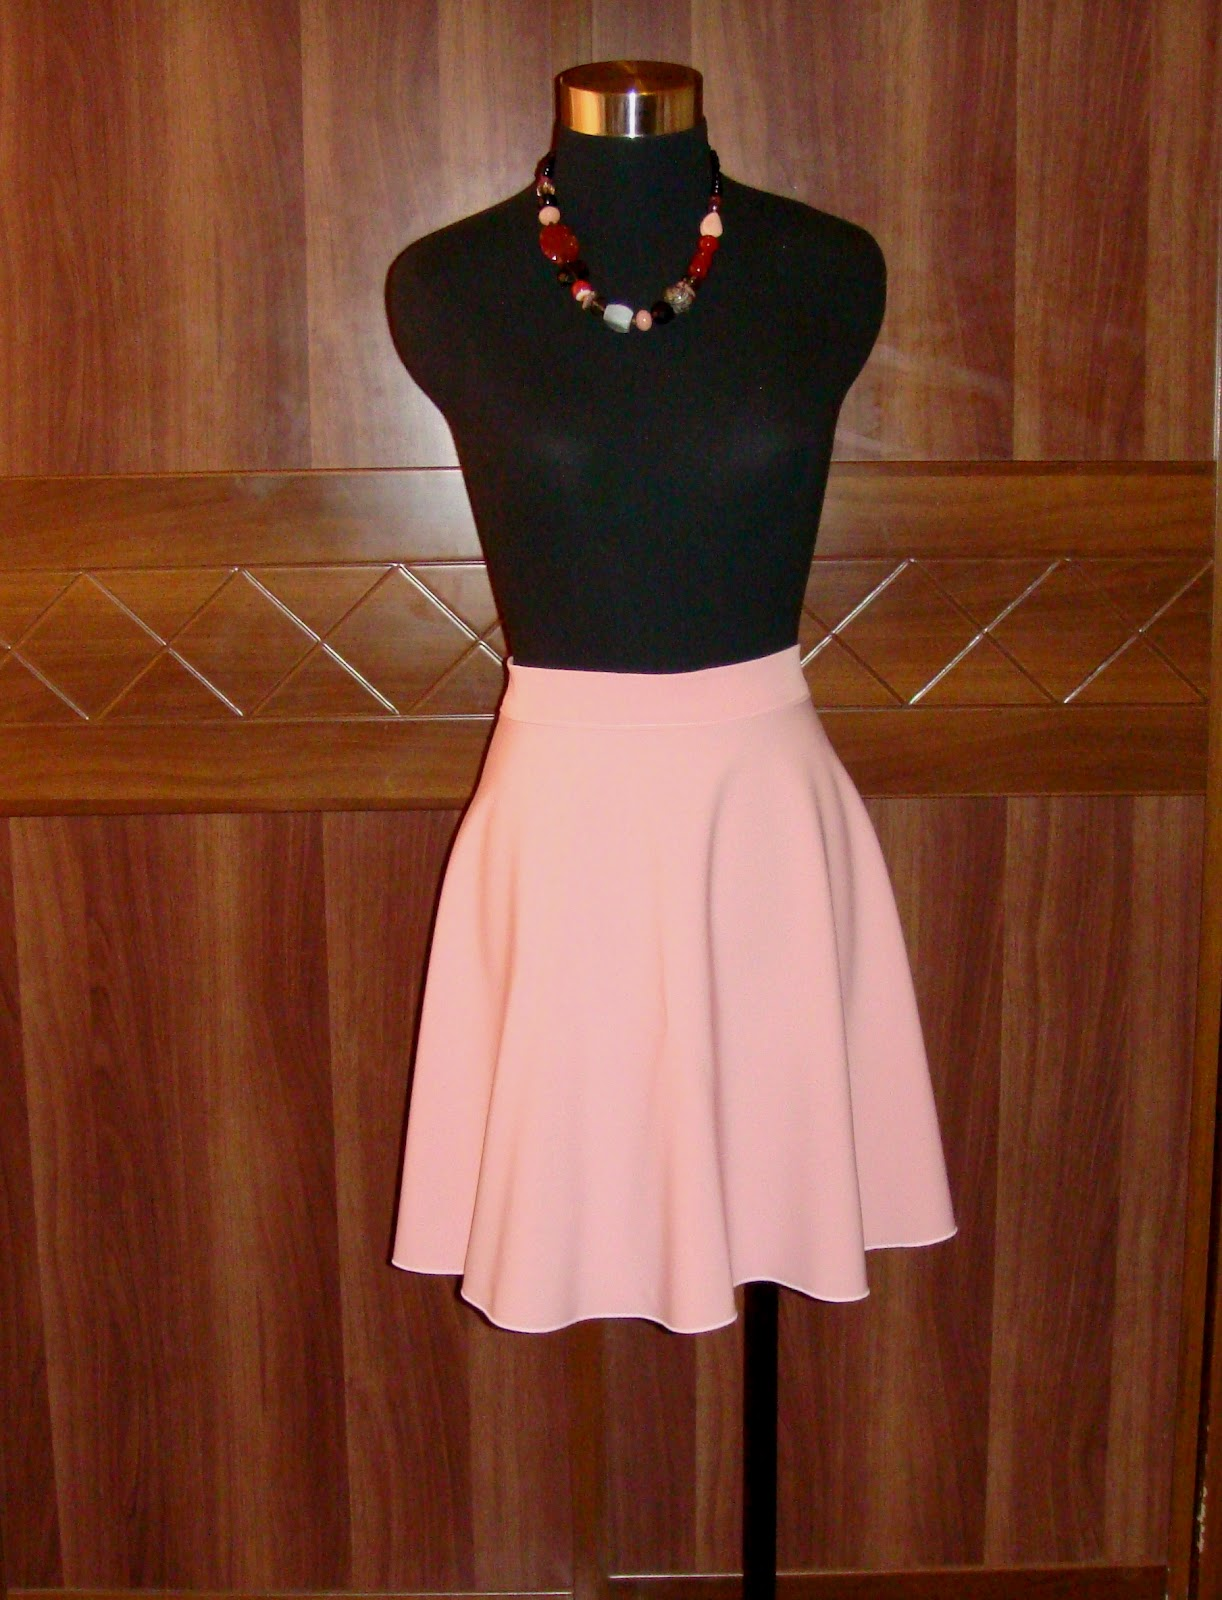 http://velvetribbonsew.blogspot.com/2012/07/summer-skirt-in-light-pink.html